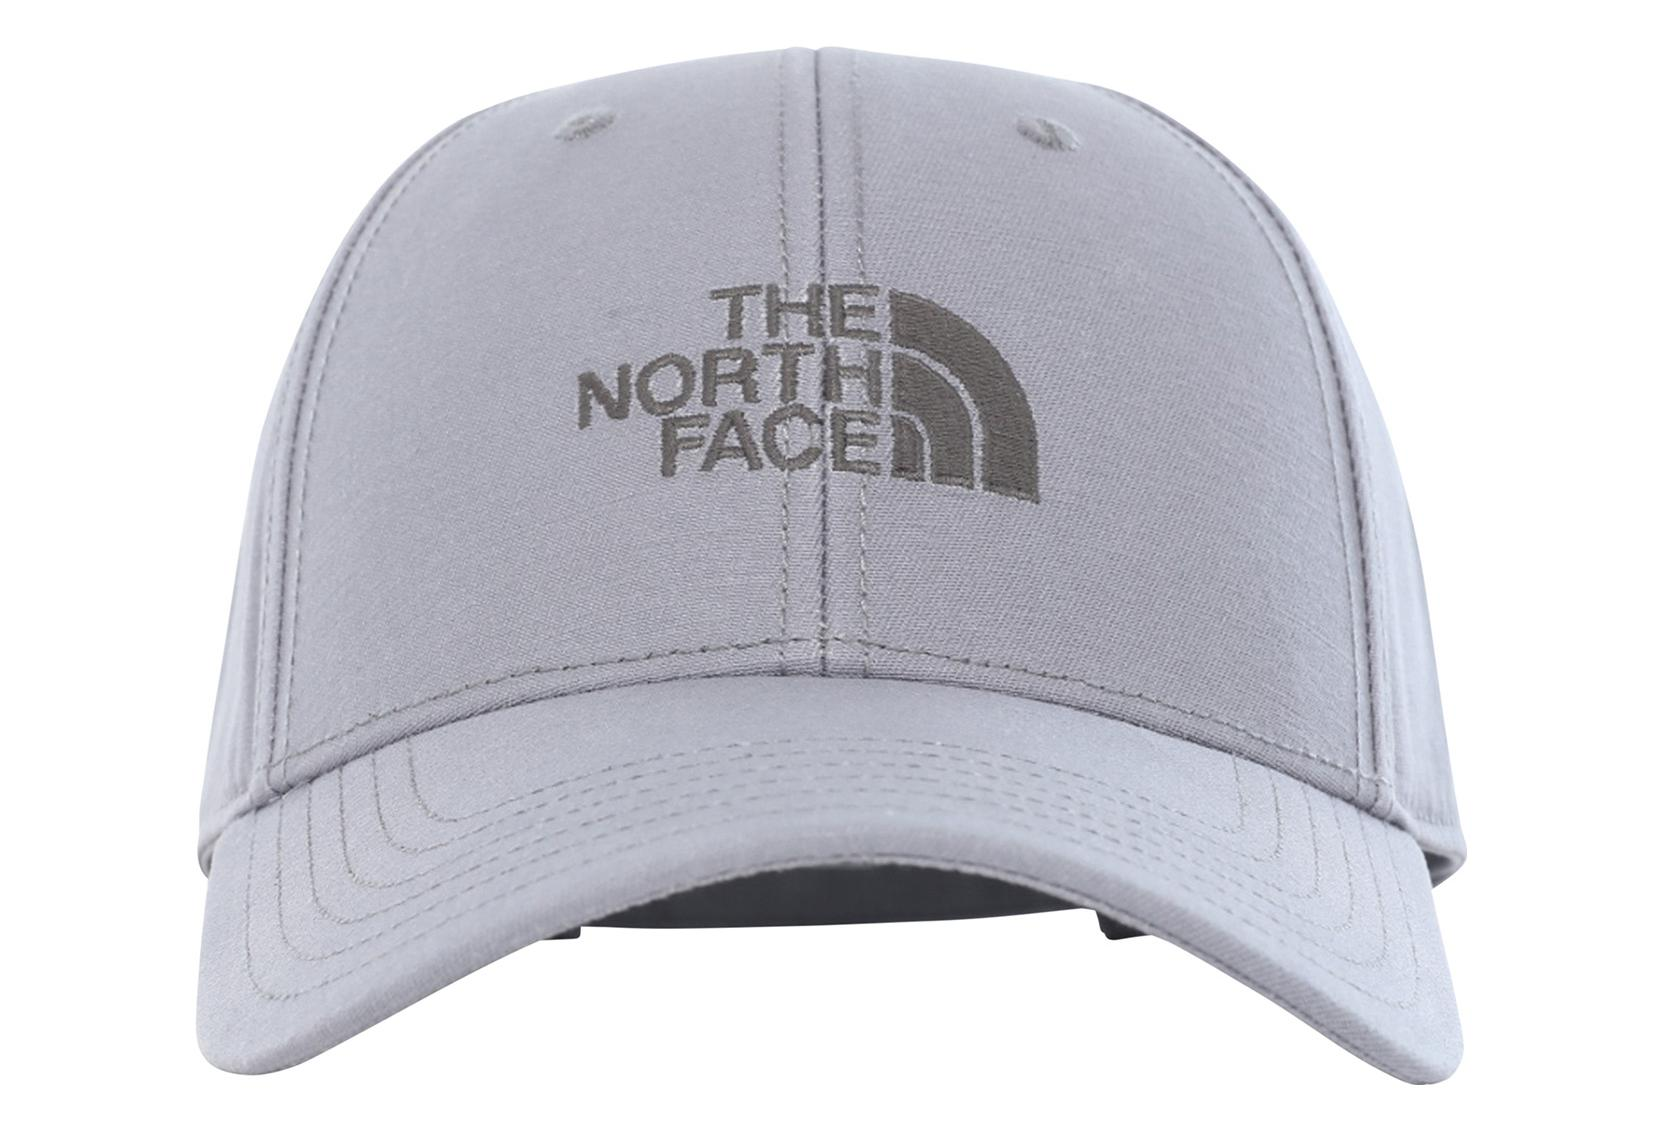 70bdc215a The North Face 66 Classic Hat Grey Unisex